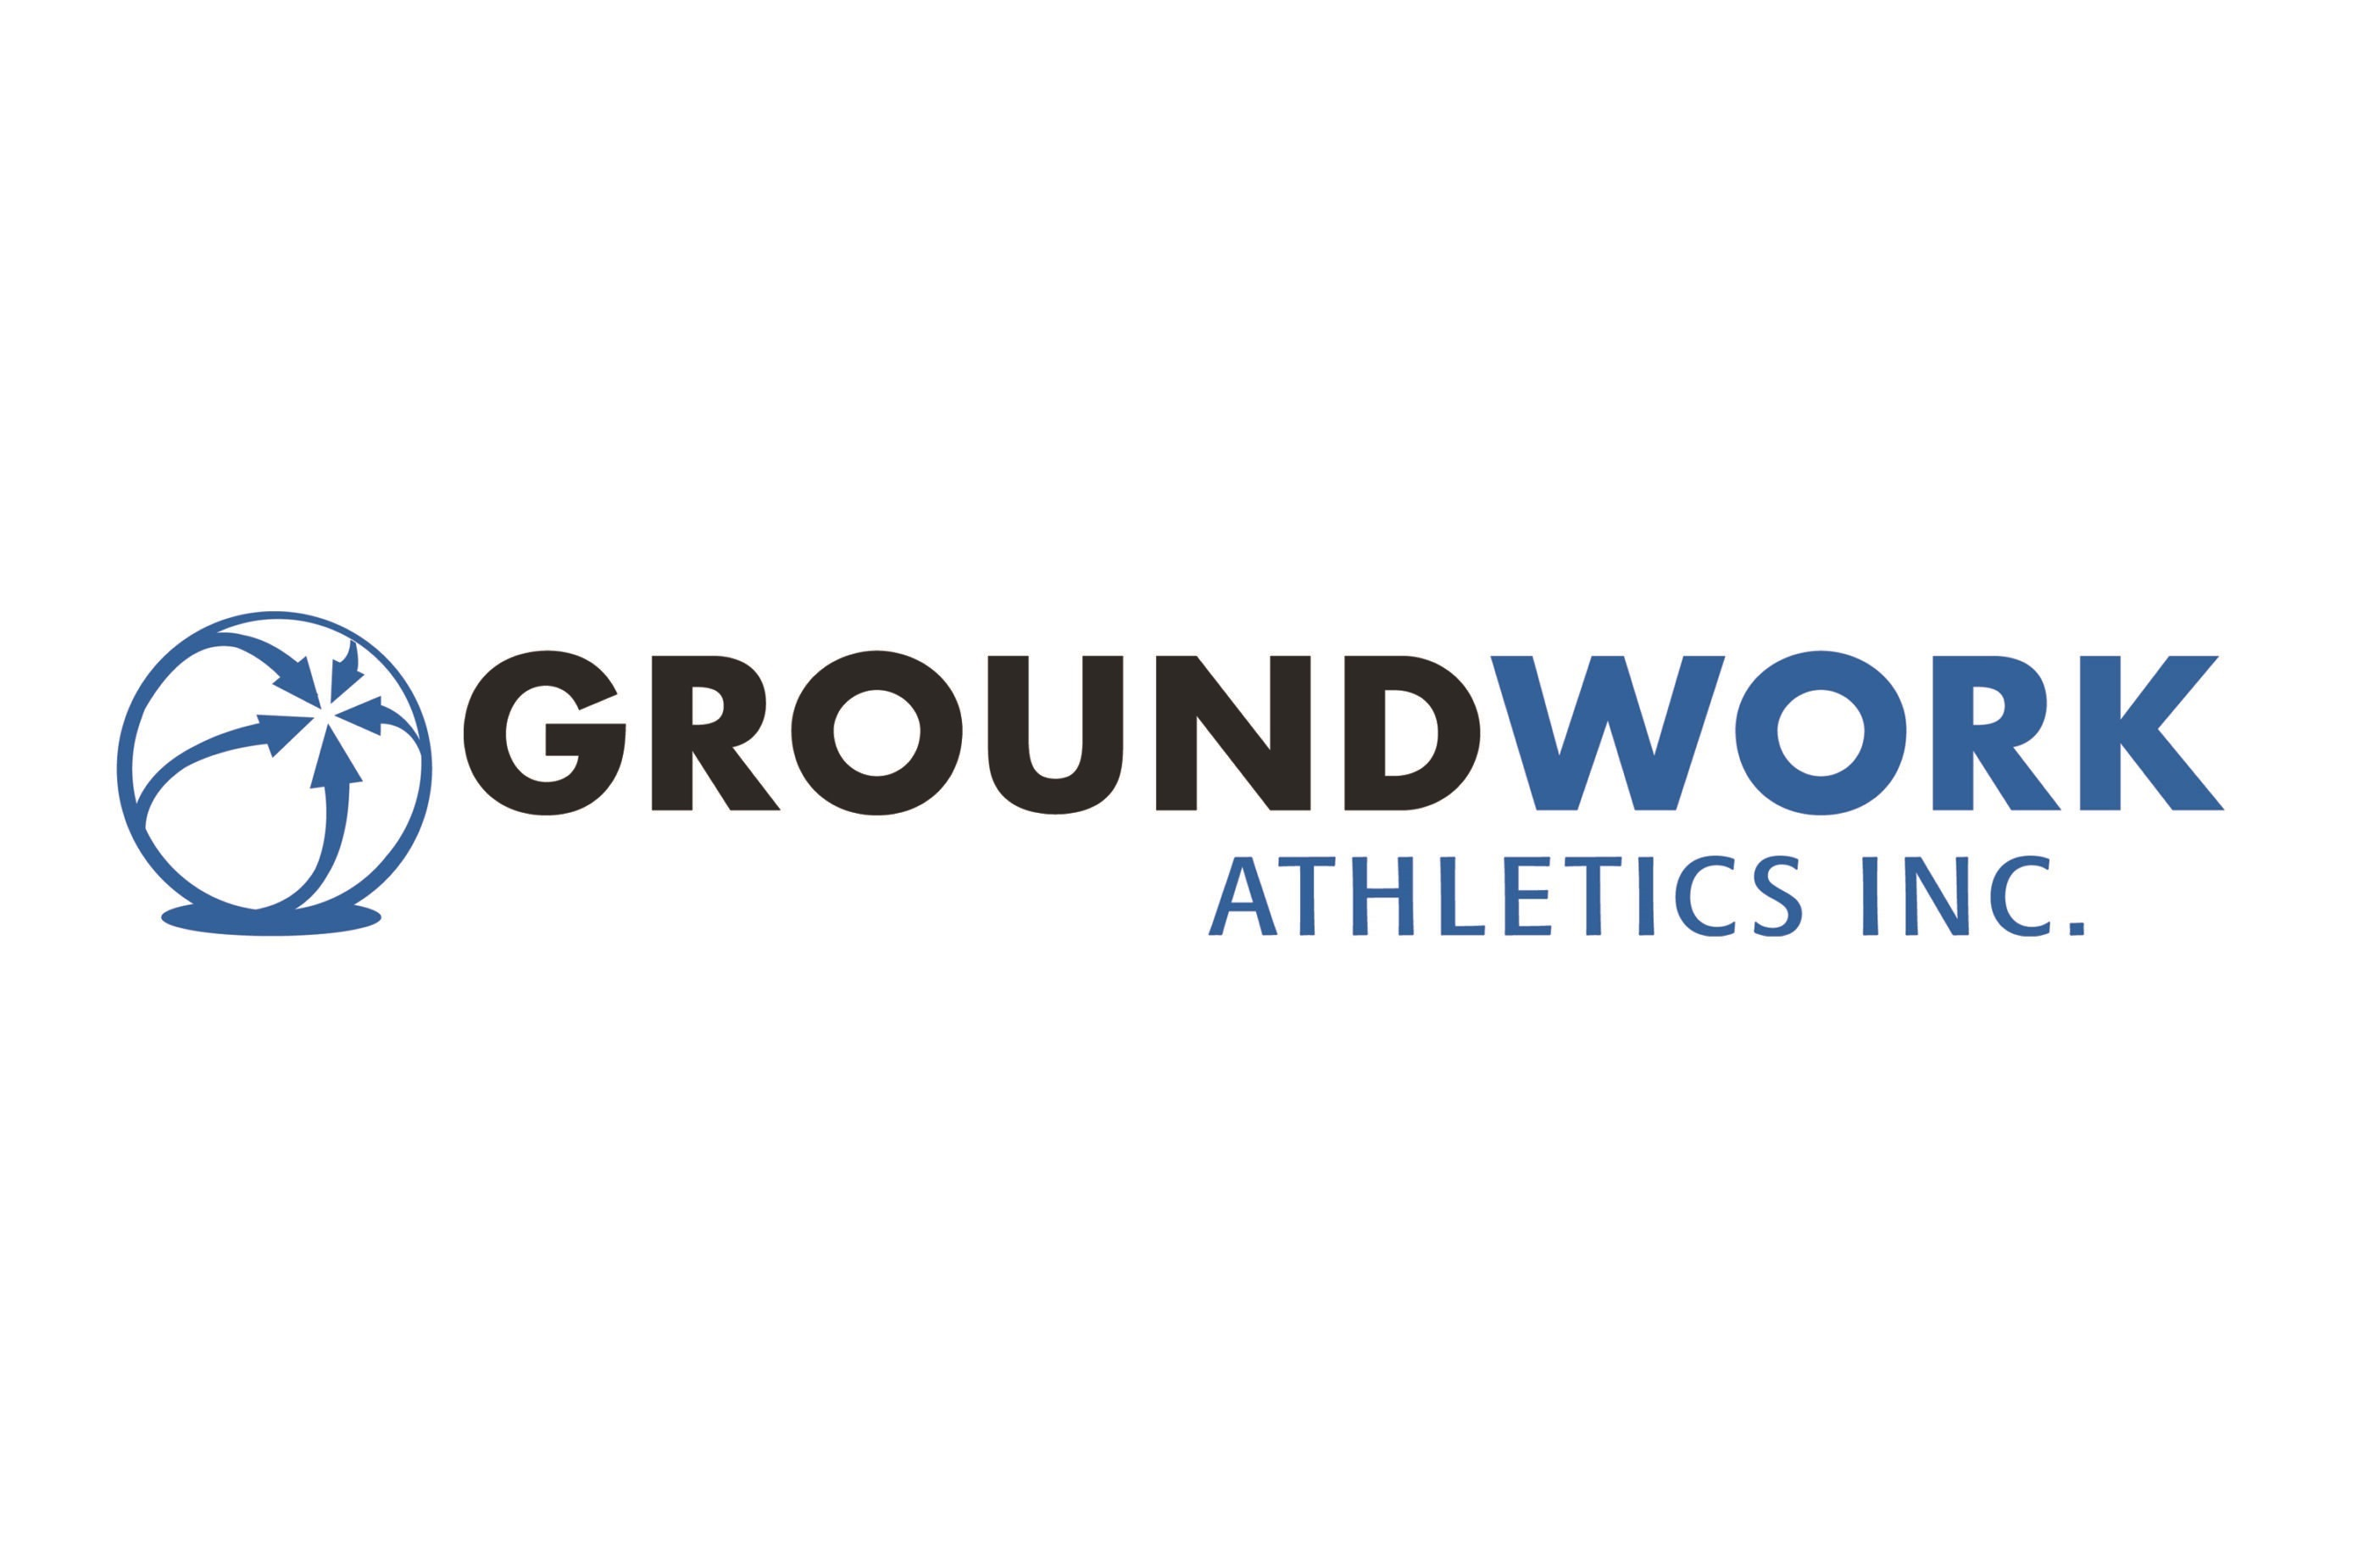 Groundwork Athletics